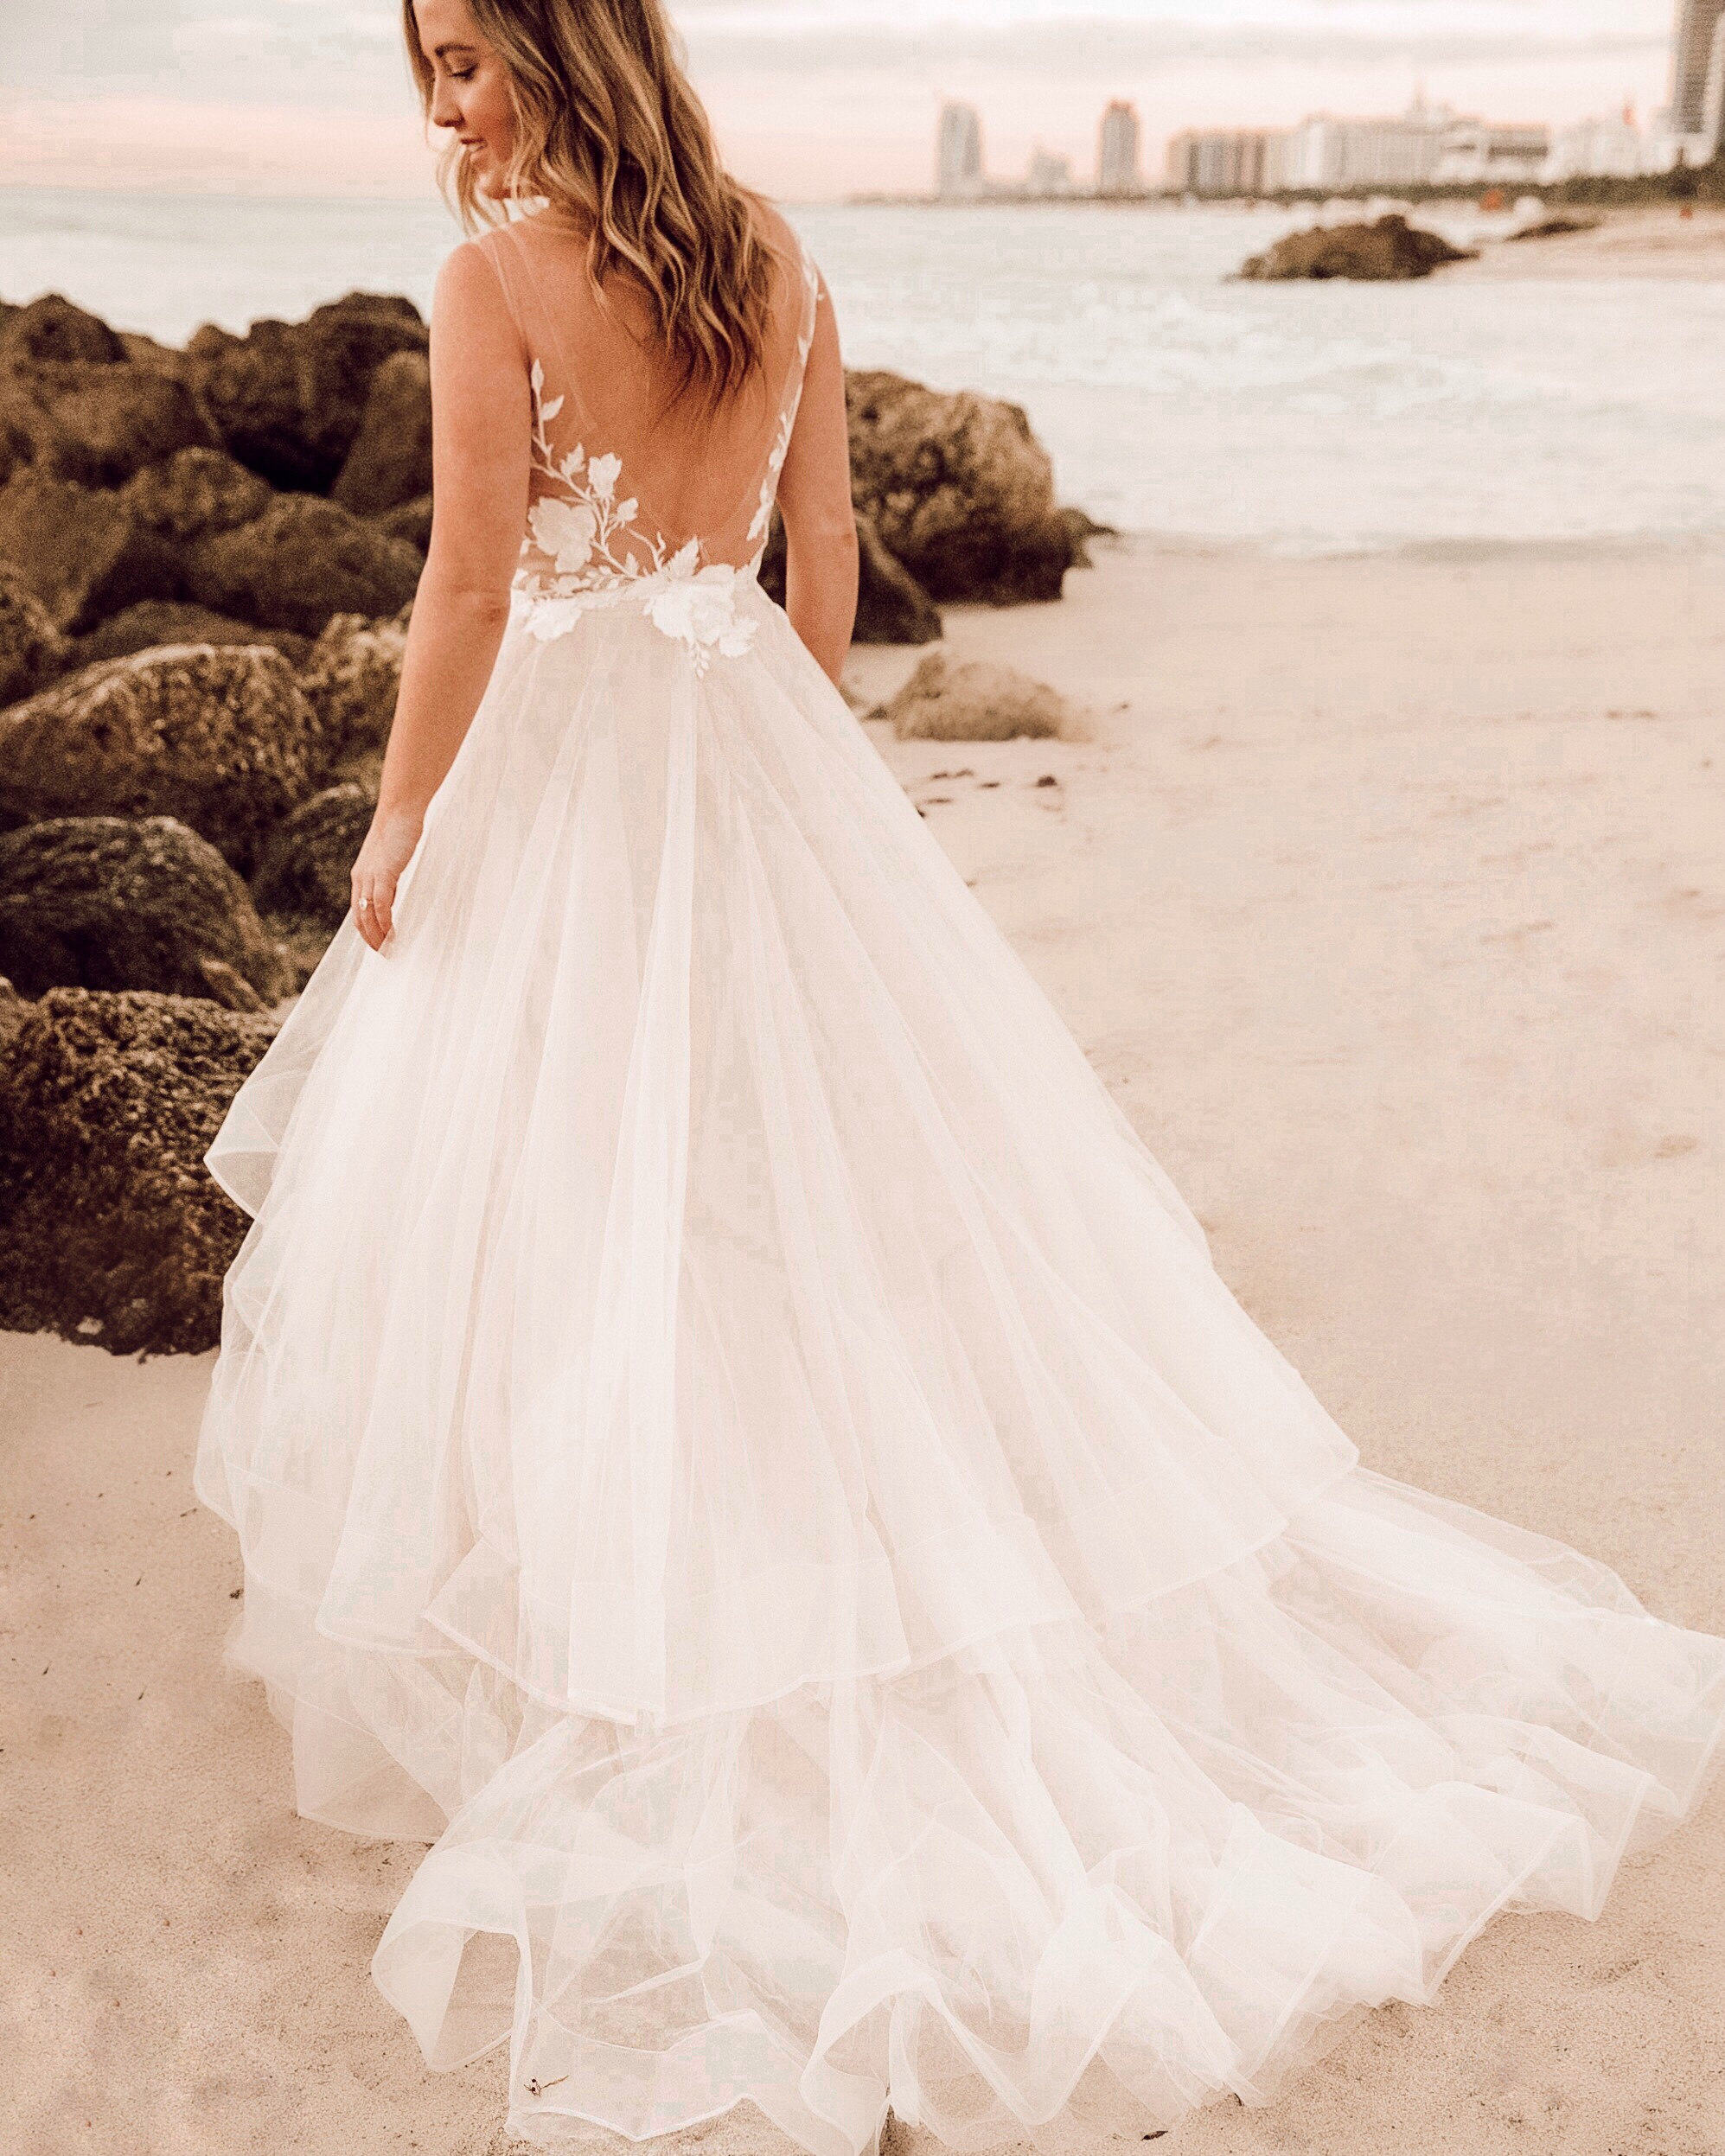 1fa96ea775 3 Tips for a Bridal Portraits Photoshoot on the Beach   SideSmile Style